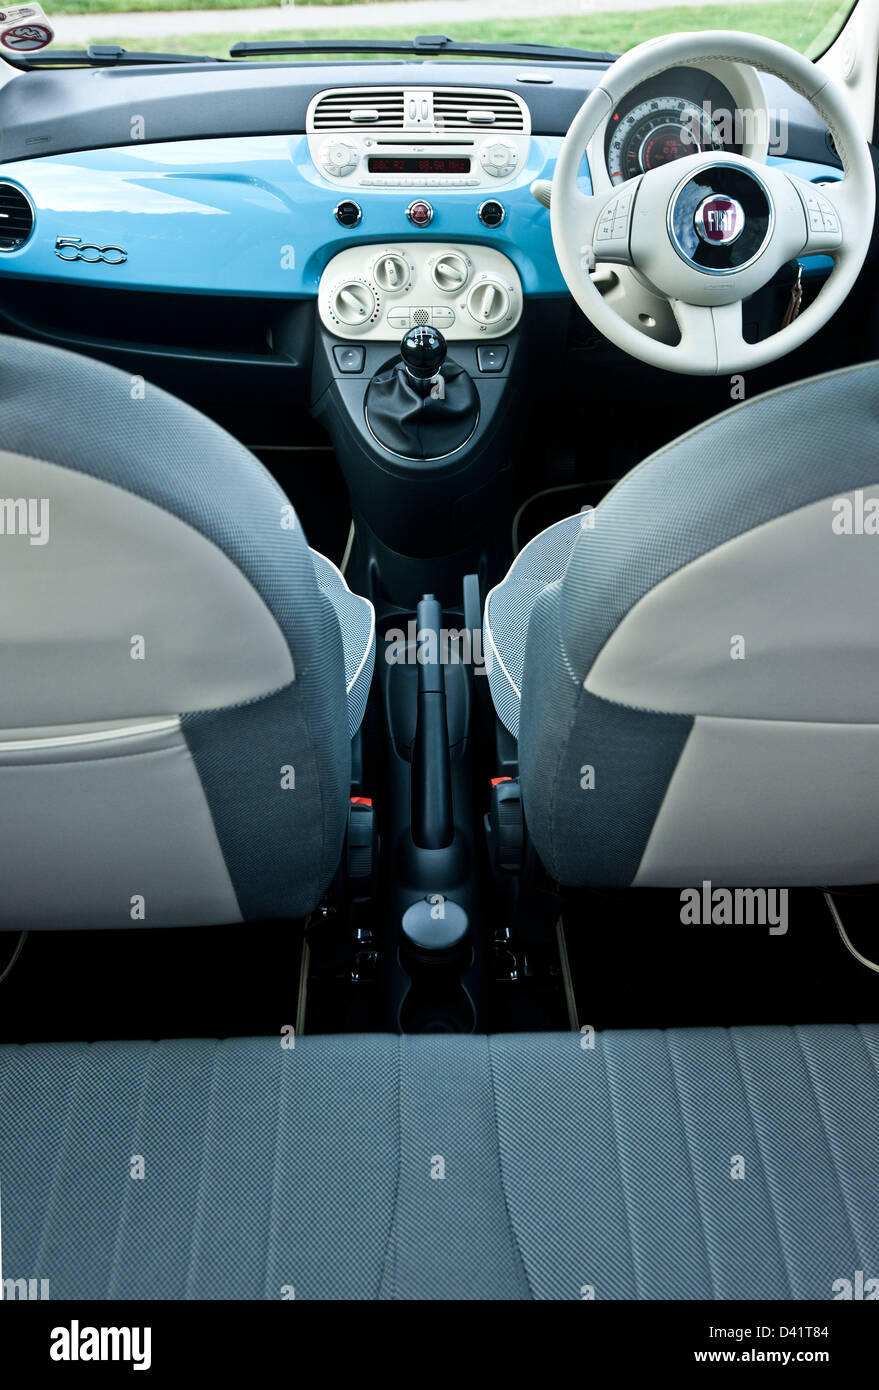 Interior dashboard of the Fiat 500 Twin Air, Winchester, UK, 22 11 ...